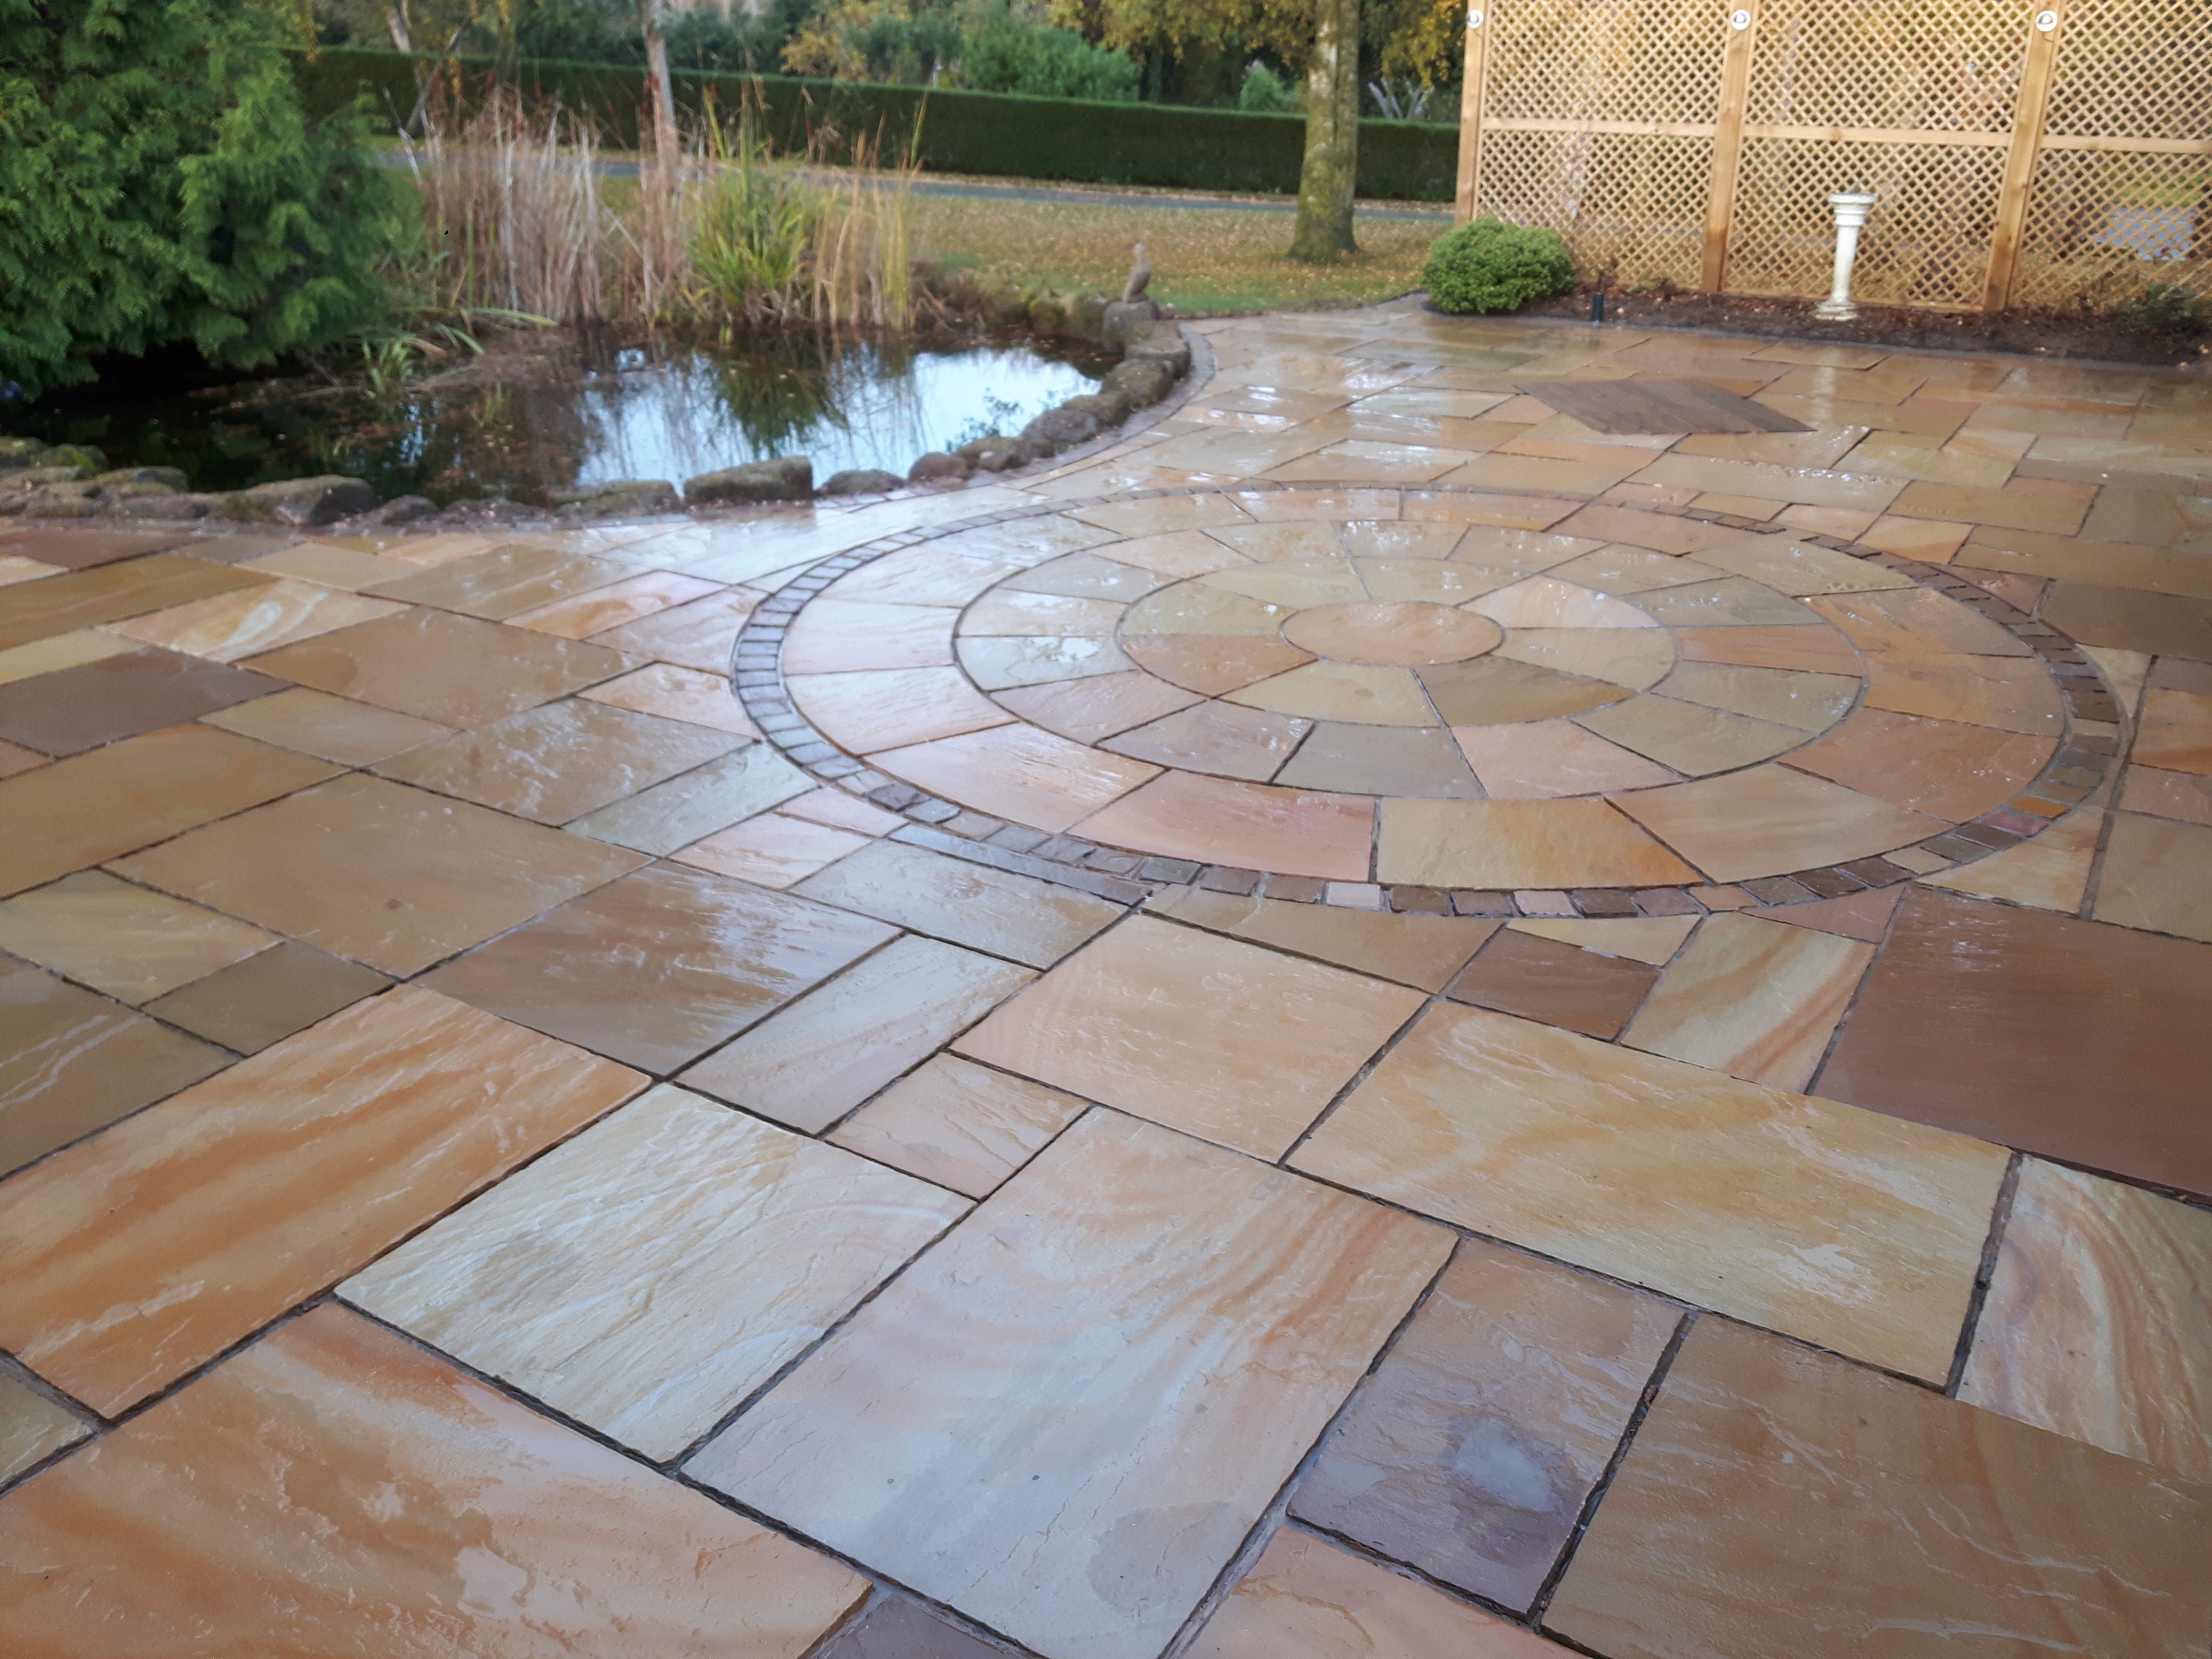 Professionally cleaned Indian stone